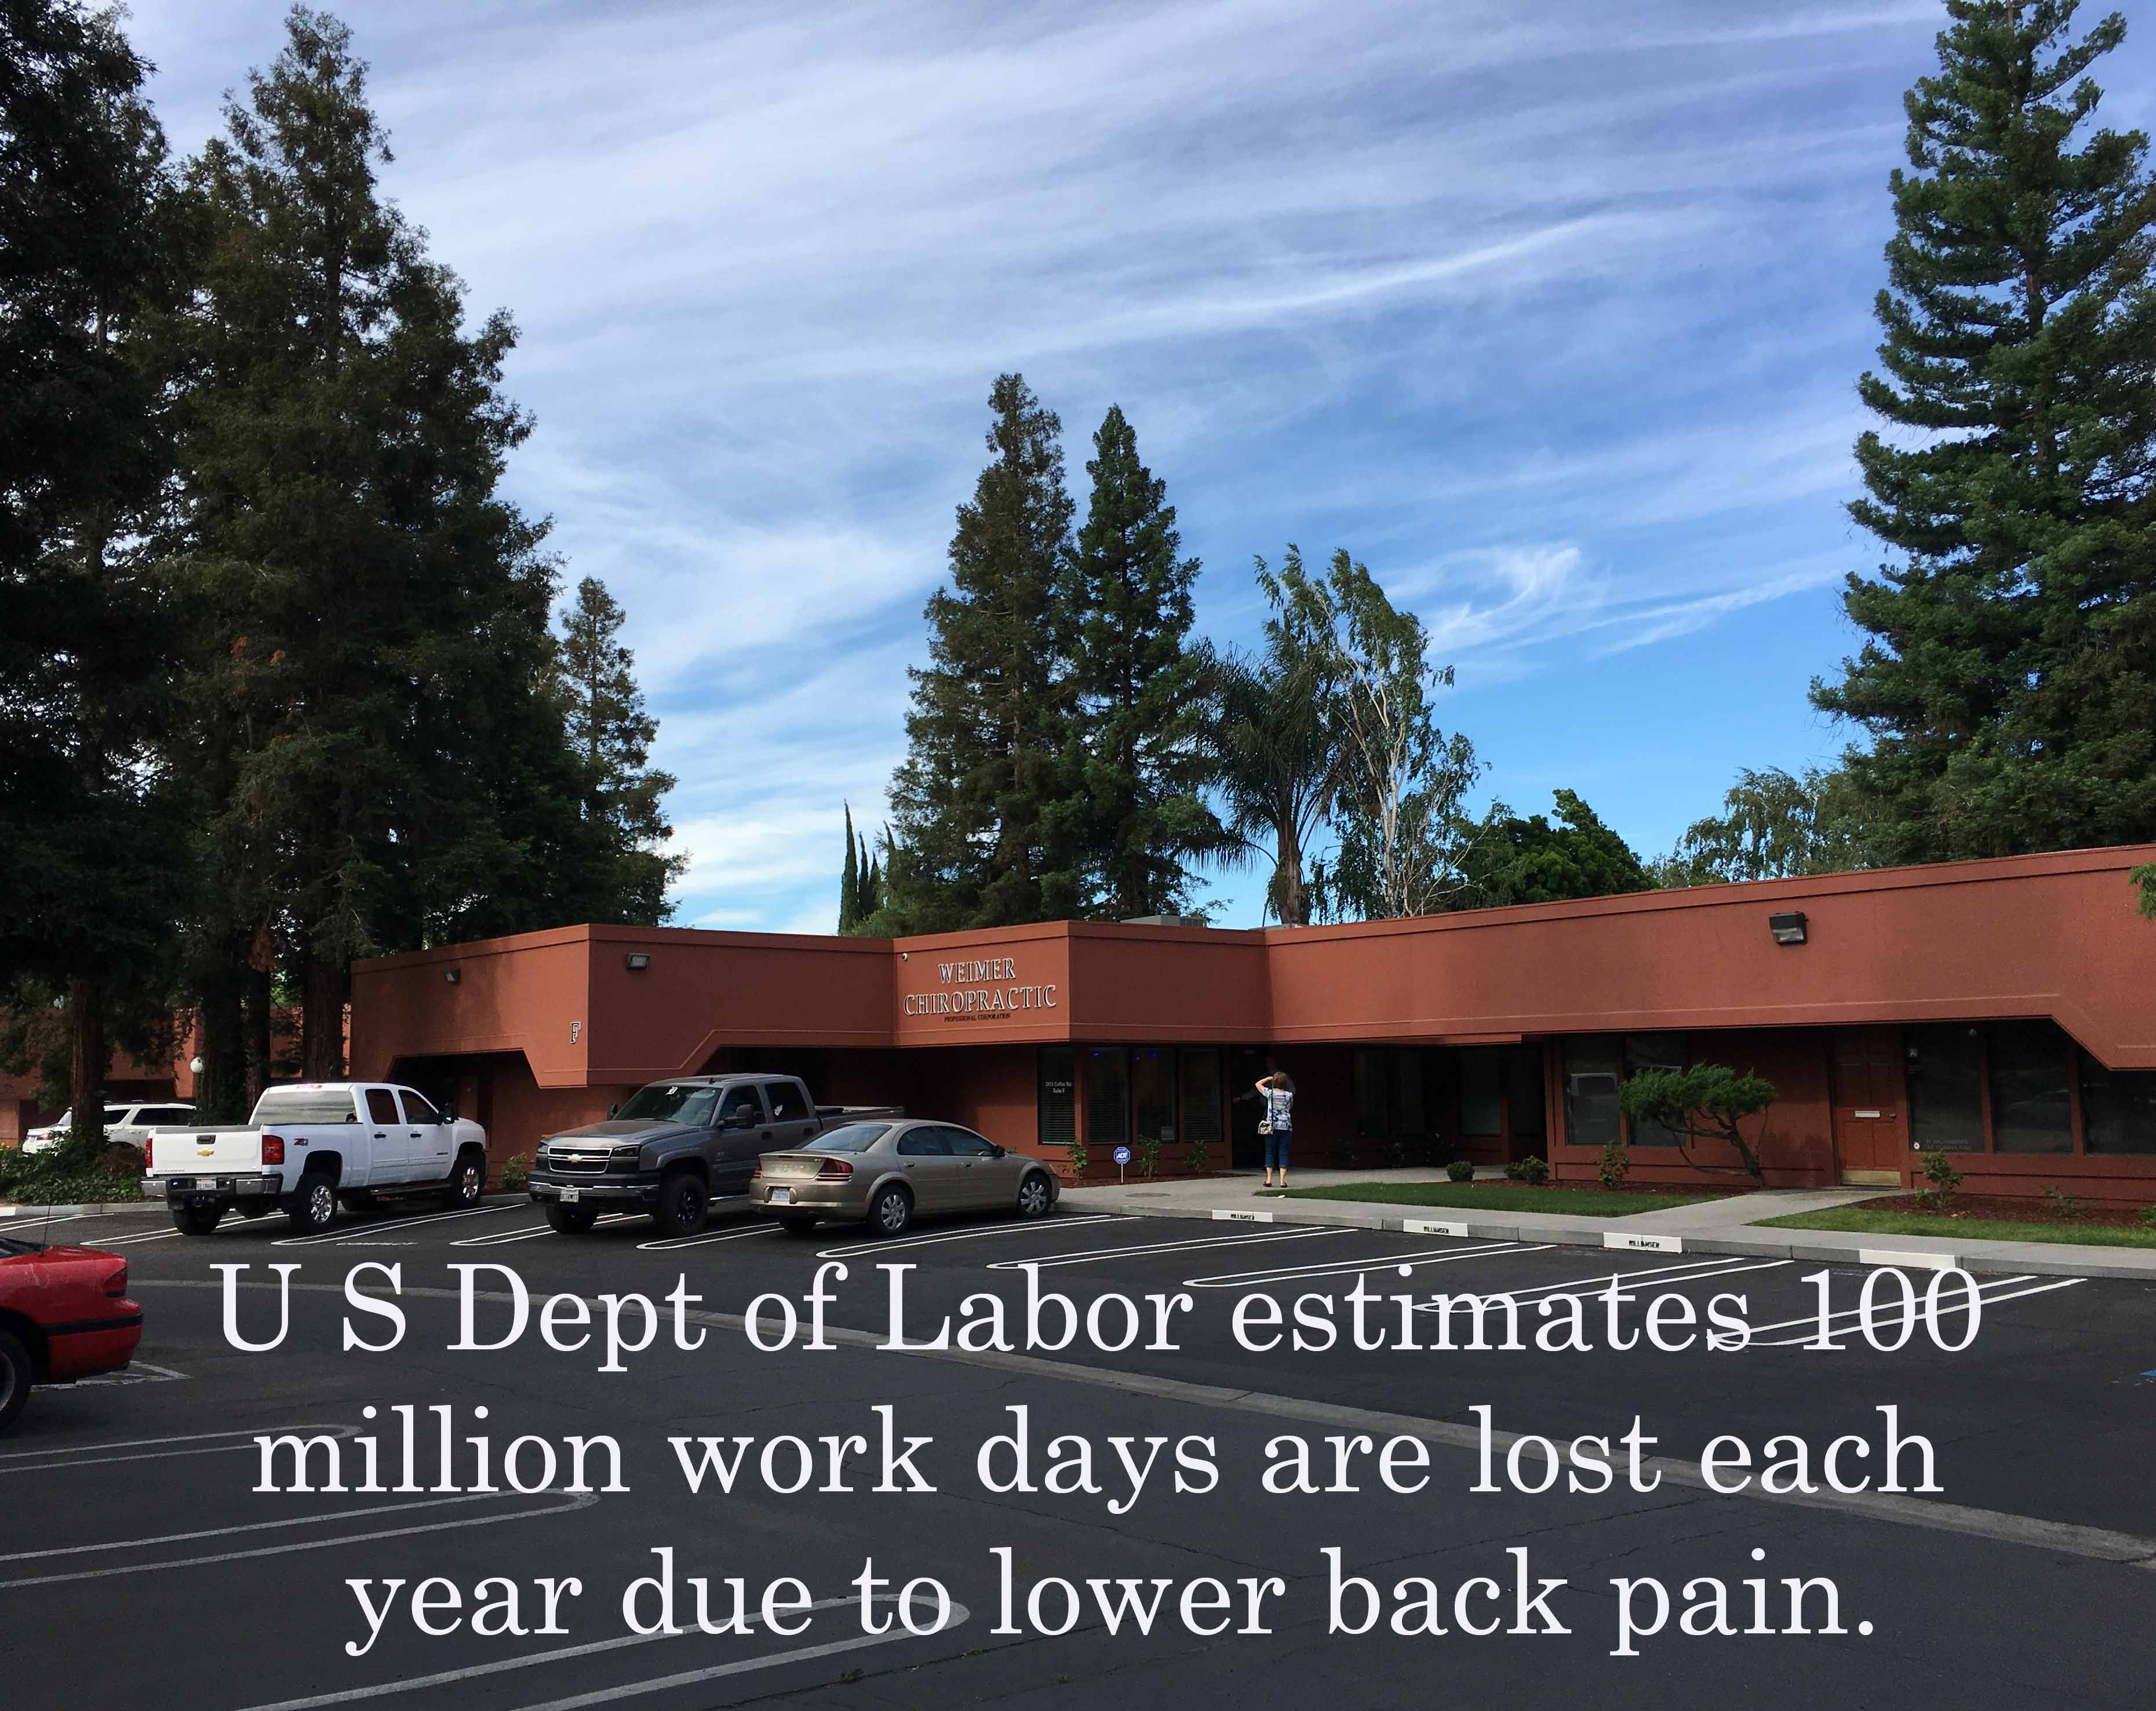 Back pain is the most common reason for missed days of work in the US.